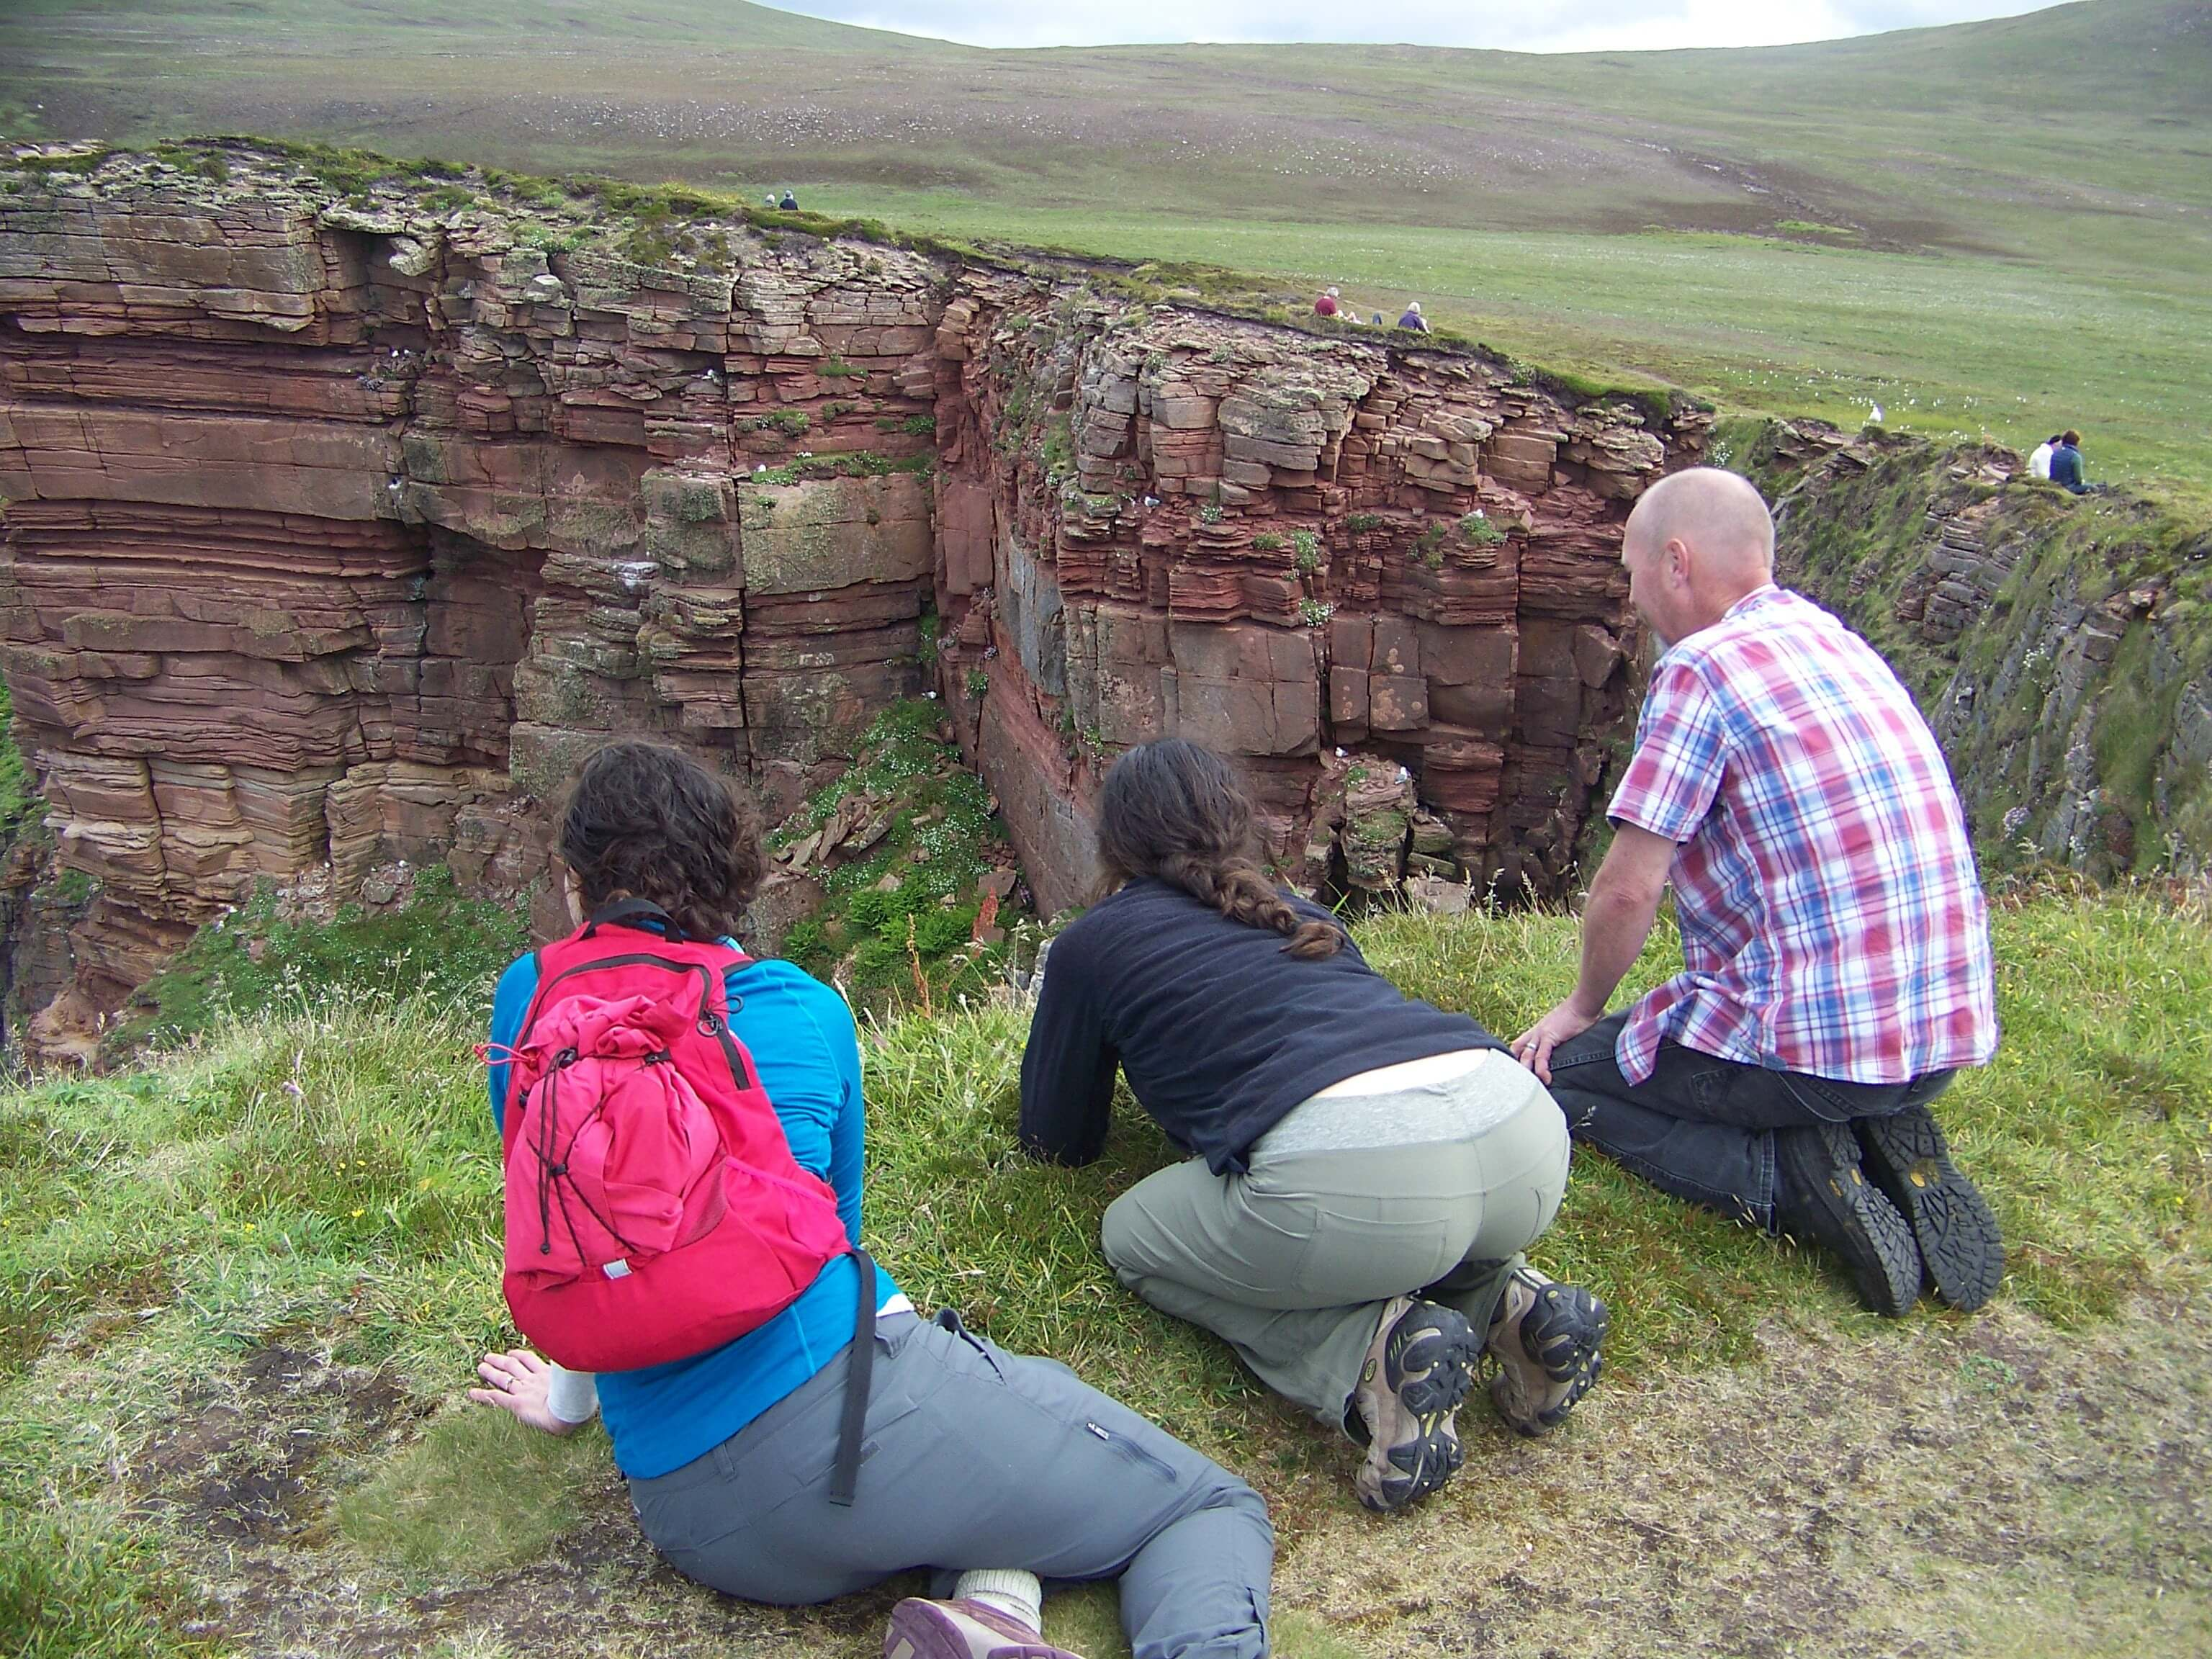 Hikers looking for puffins on Orkney cliffs.